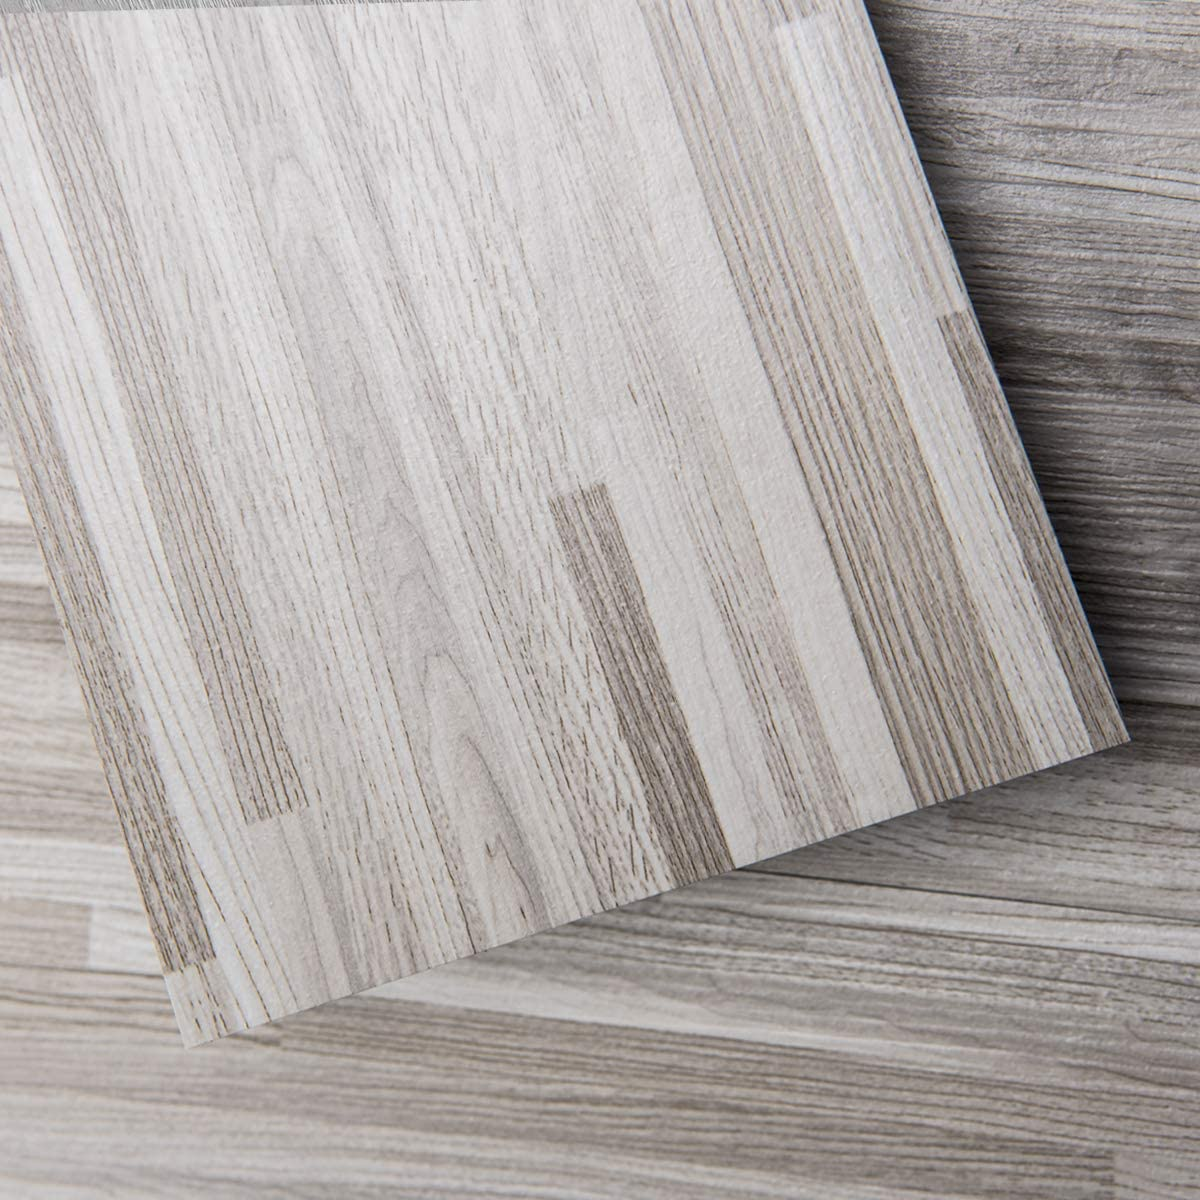 A43005-Peel-and-Stick-Floor-Tile 36 Tiles 54 Sq.Ft